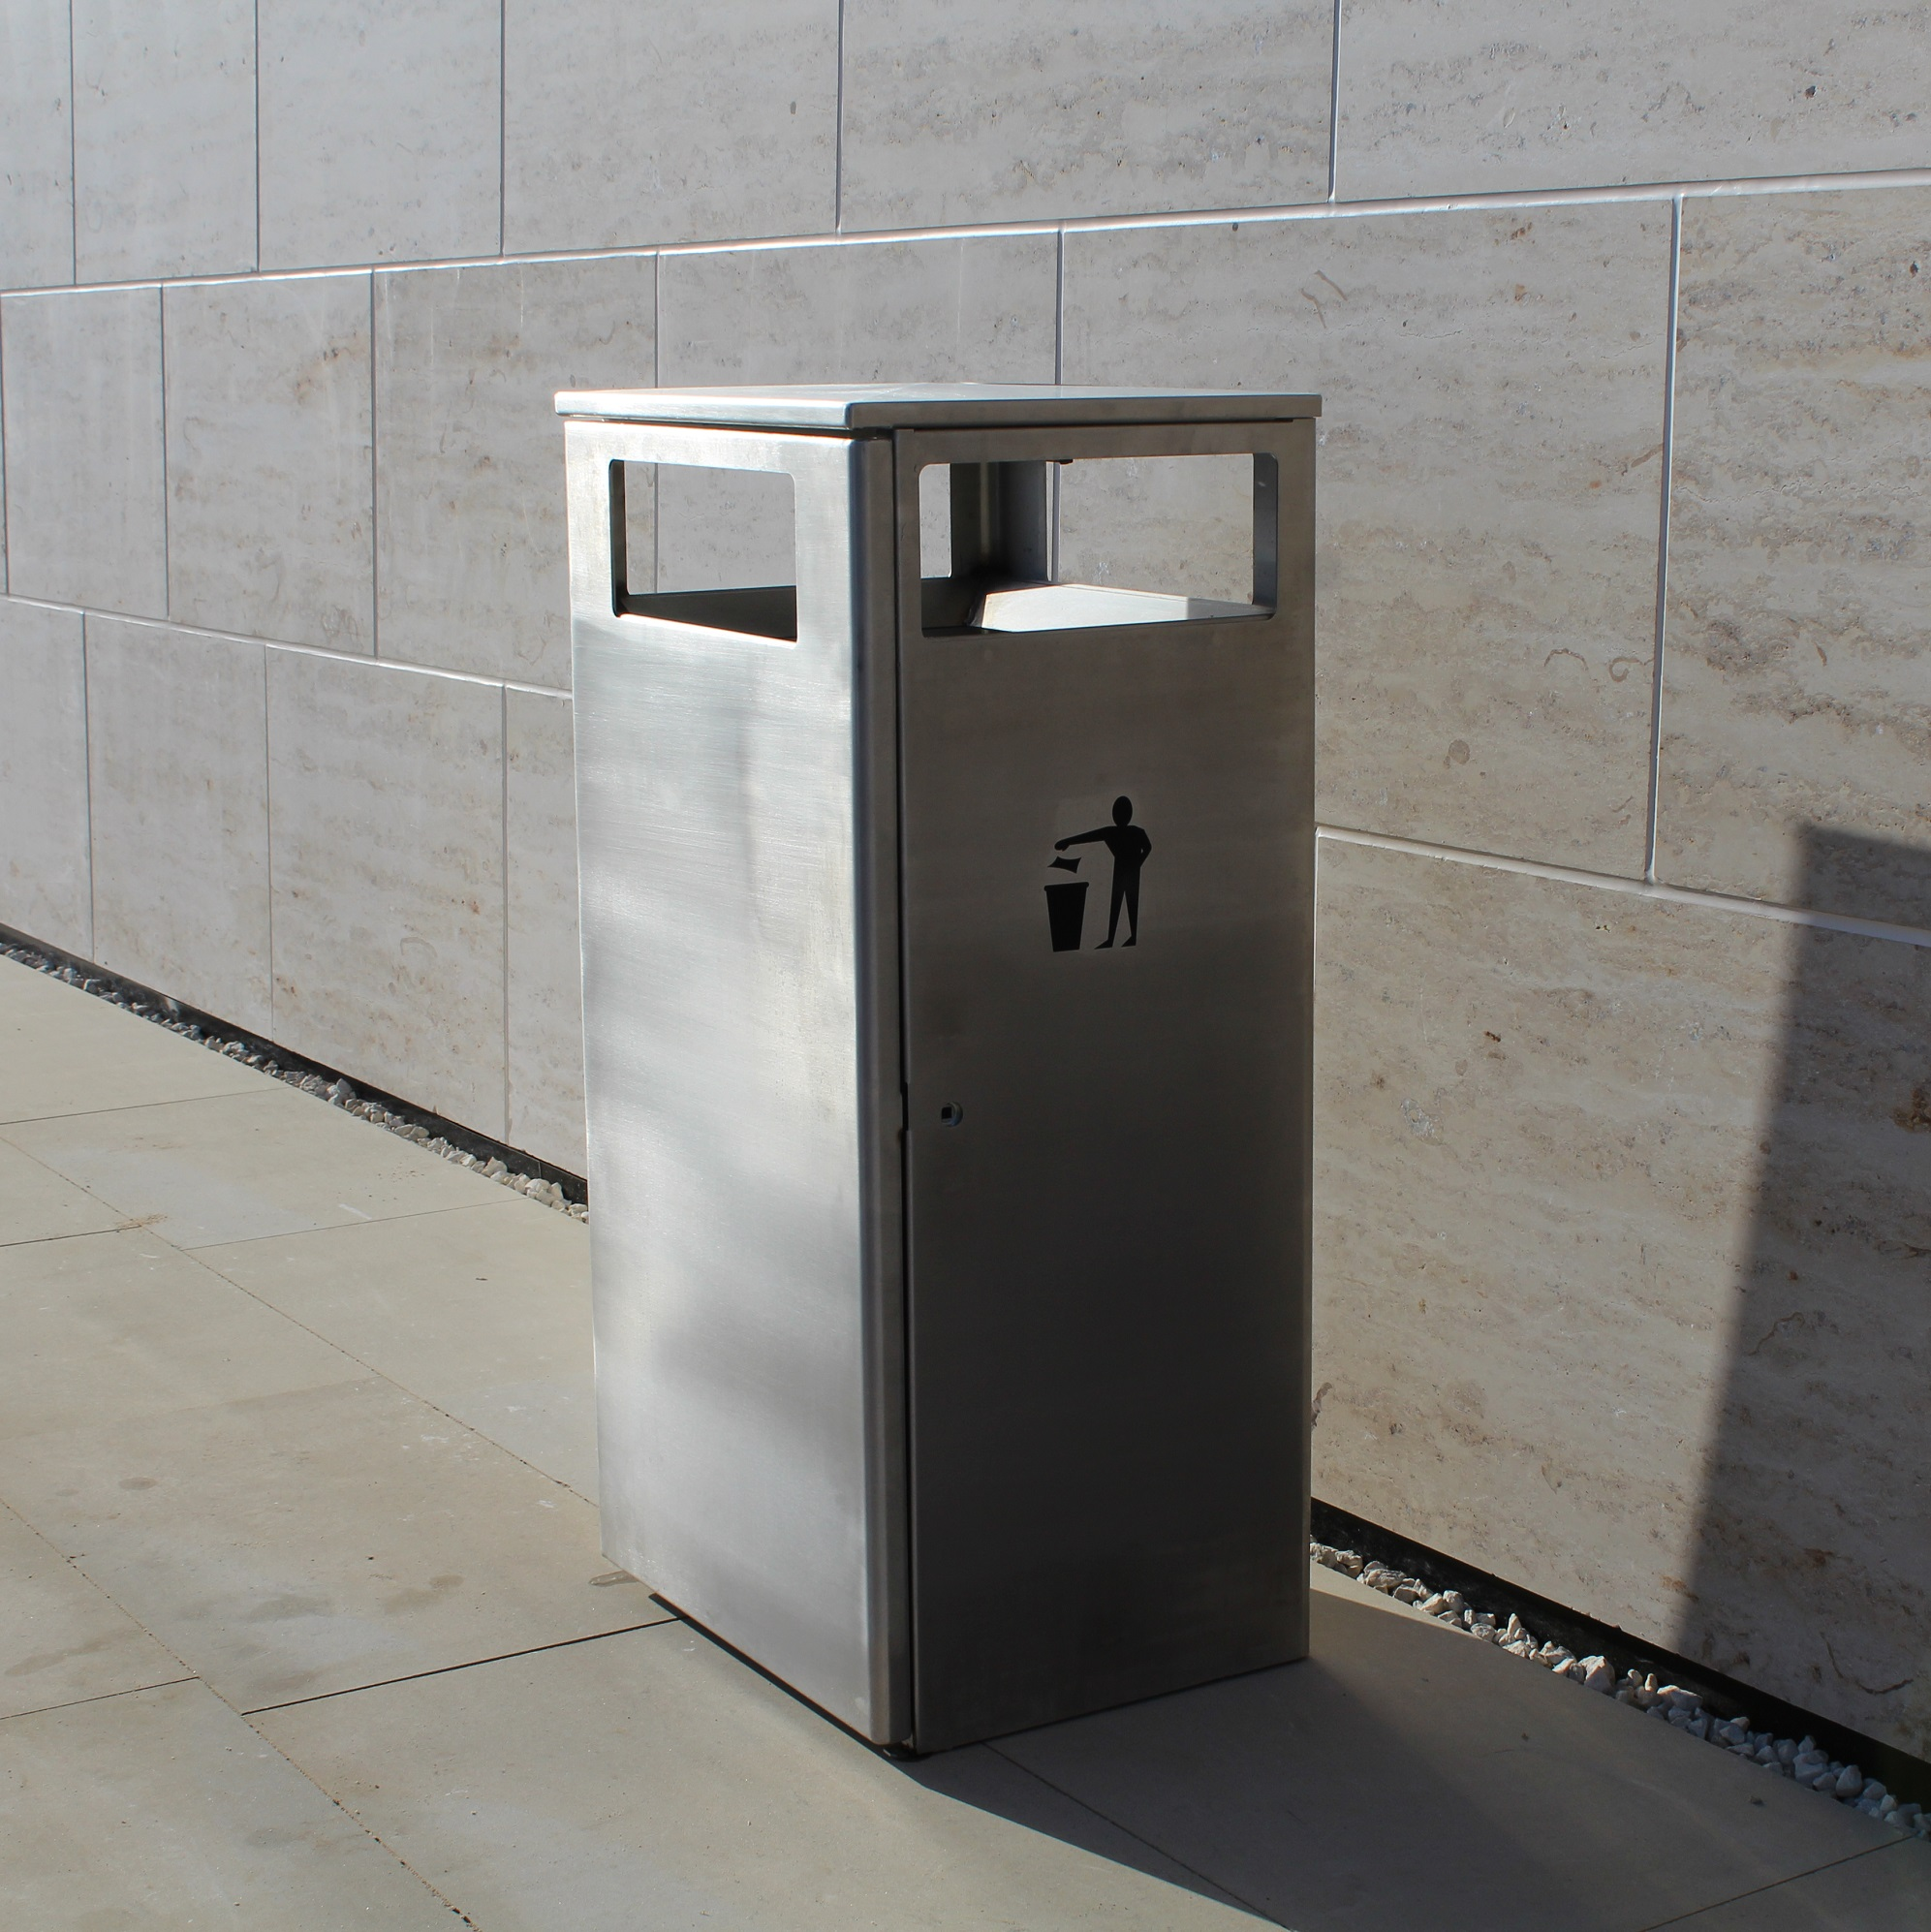 Ares Stainless Steel Litter Bin